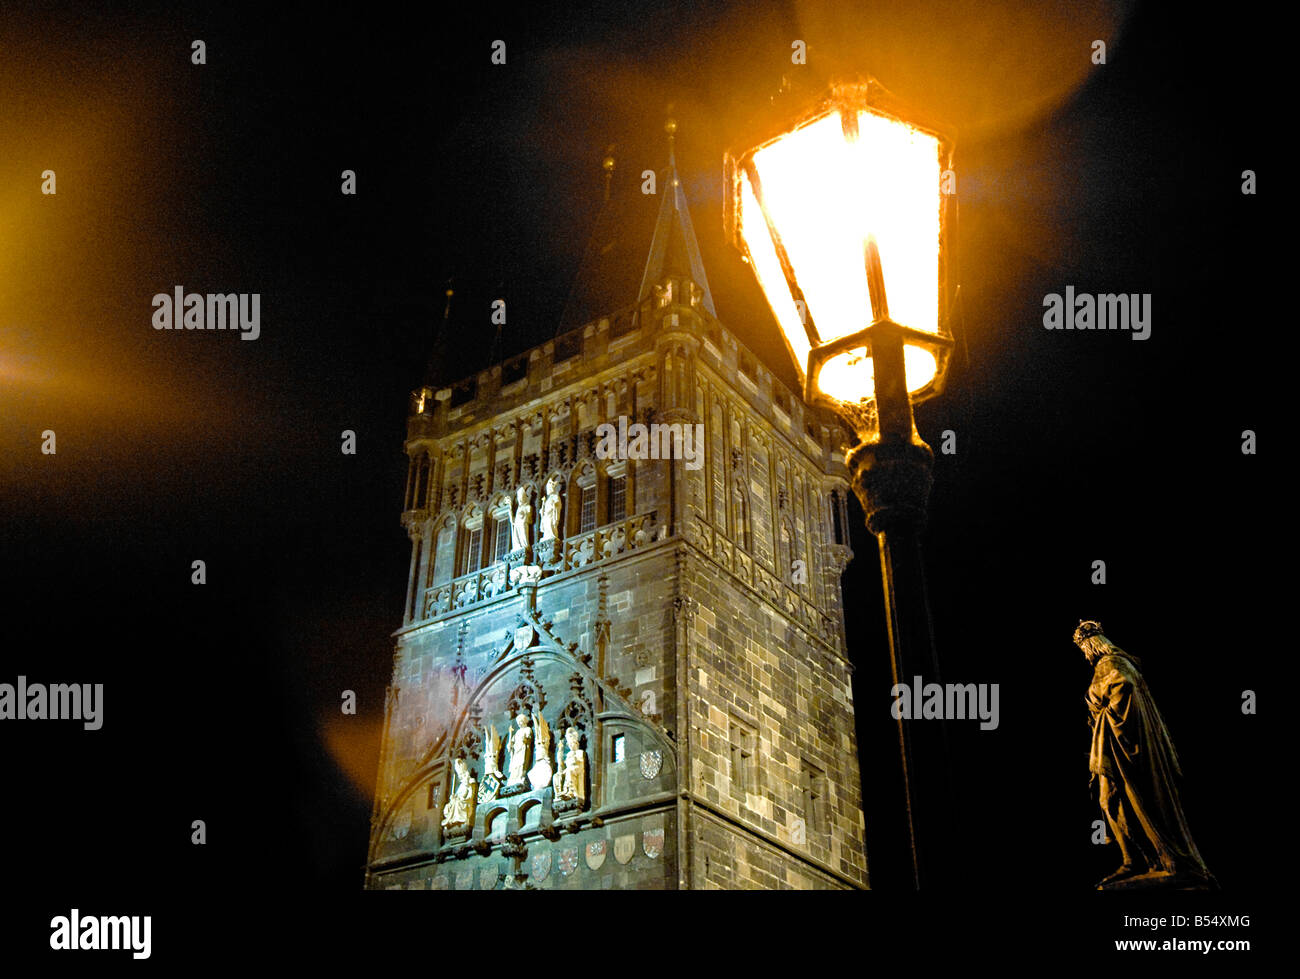 The Old Town Bridge Tower and Statue of Charles IV in Knights of the Cross Square Prague illuminated at night FOR - Stock Image